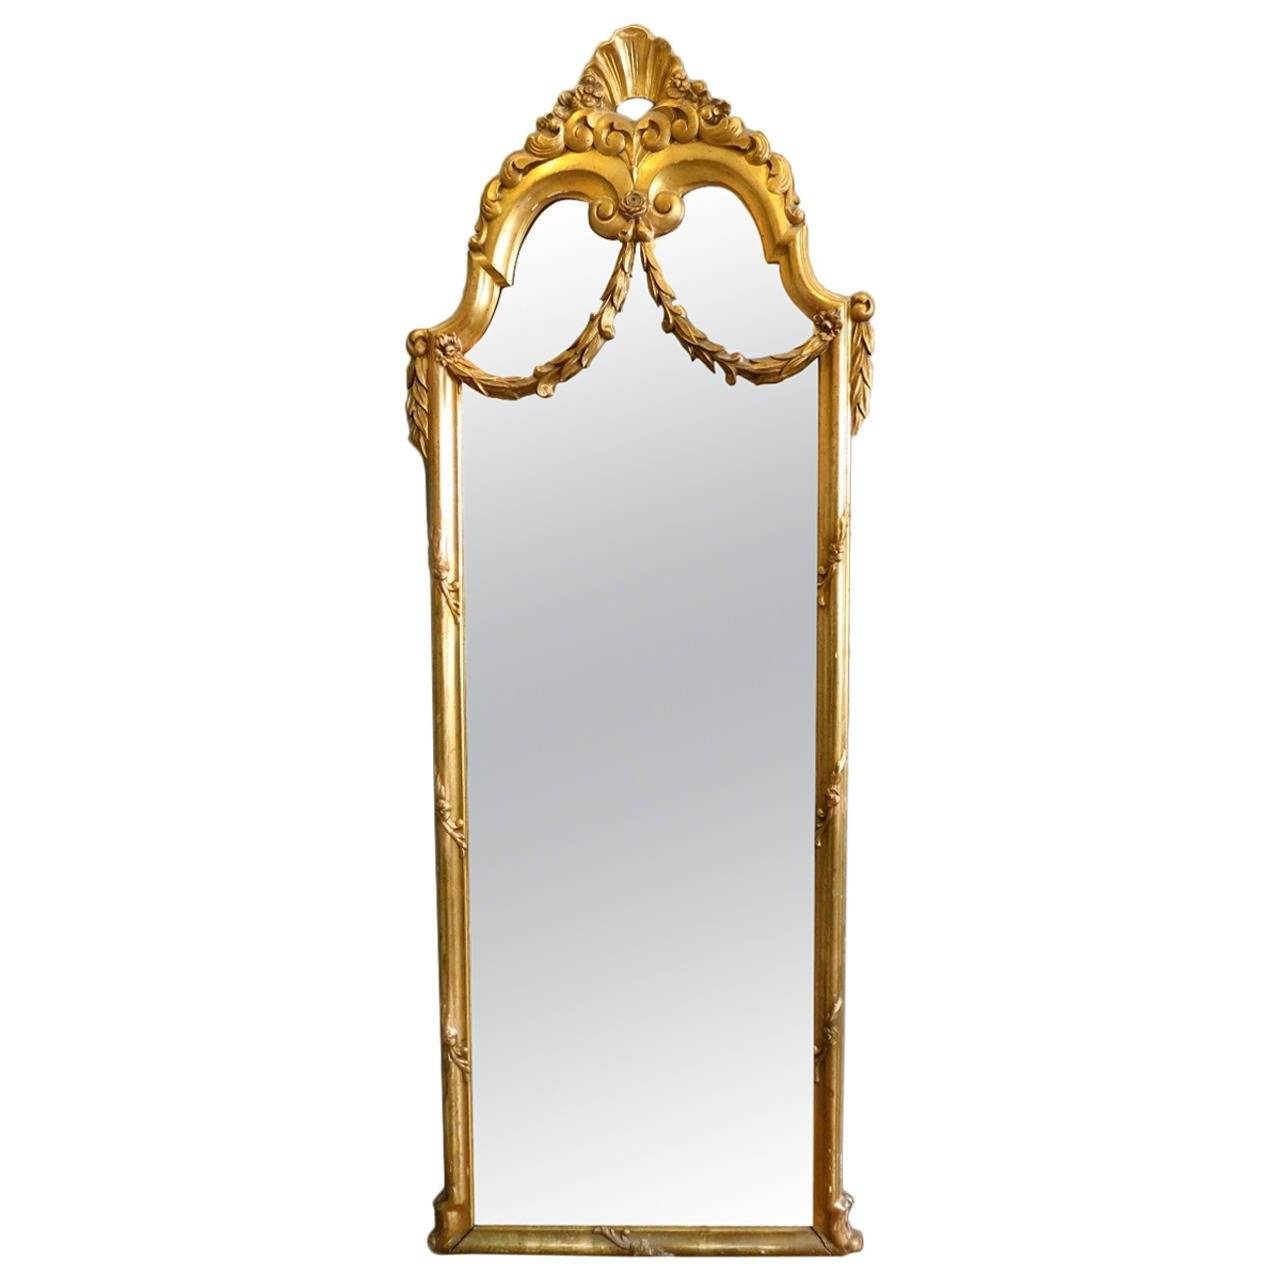 Antique French Gold Gilt Floor Standing Mirror At 1Stdibs within Ornate Free Standing Mirrors (Image 4 of 15)